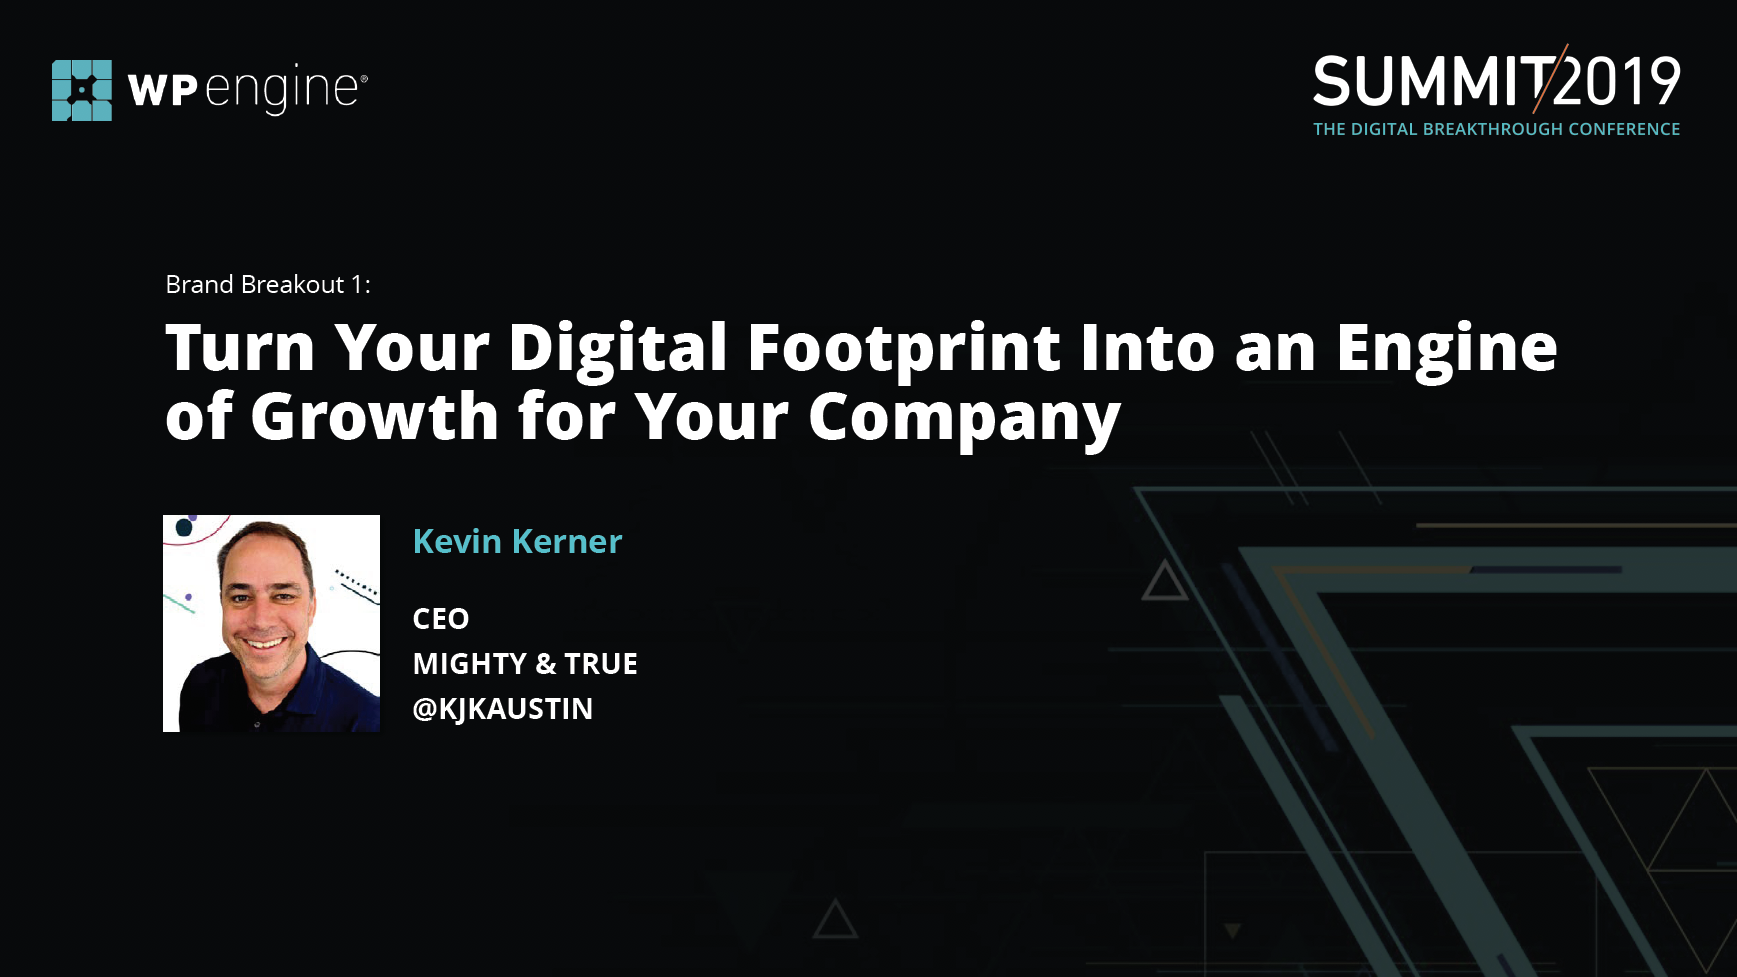 US Summit 2019 - Mighty _ True - Brand Breakout 1- Turn Your Digital WordPress Footprint Into an Engine of Growth for Your Company